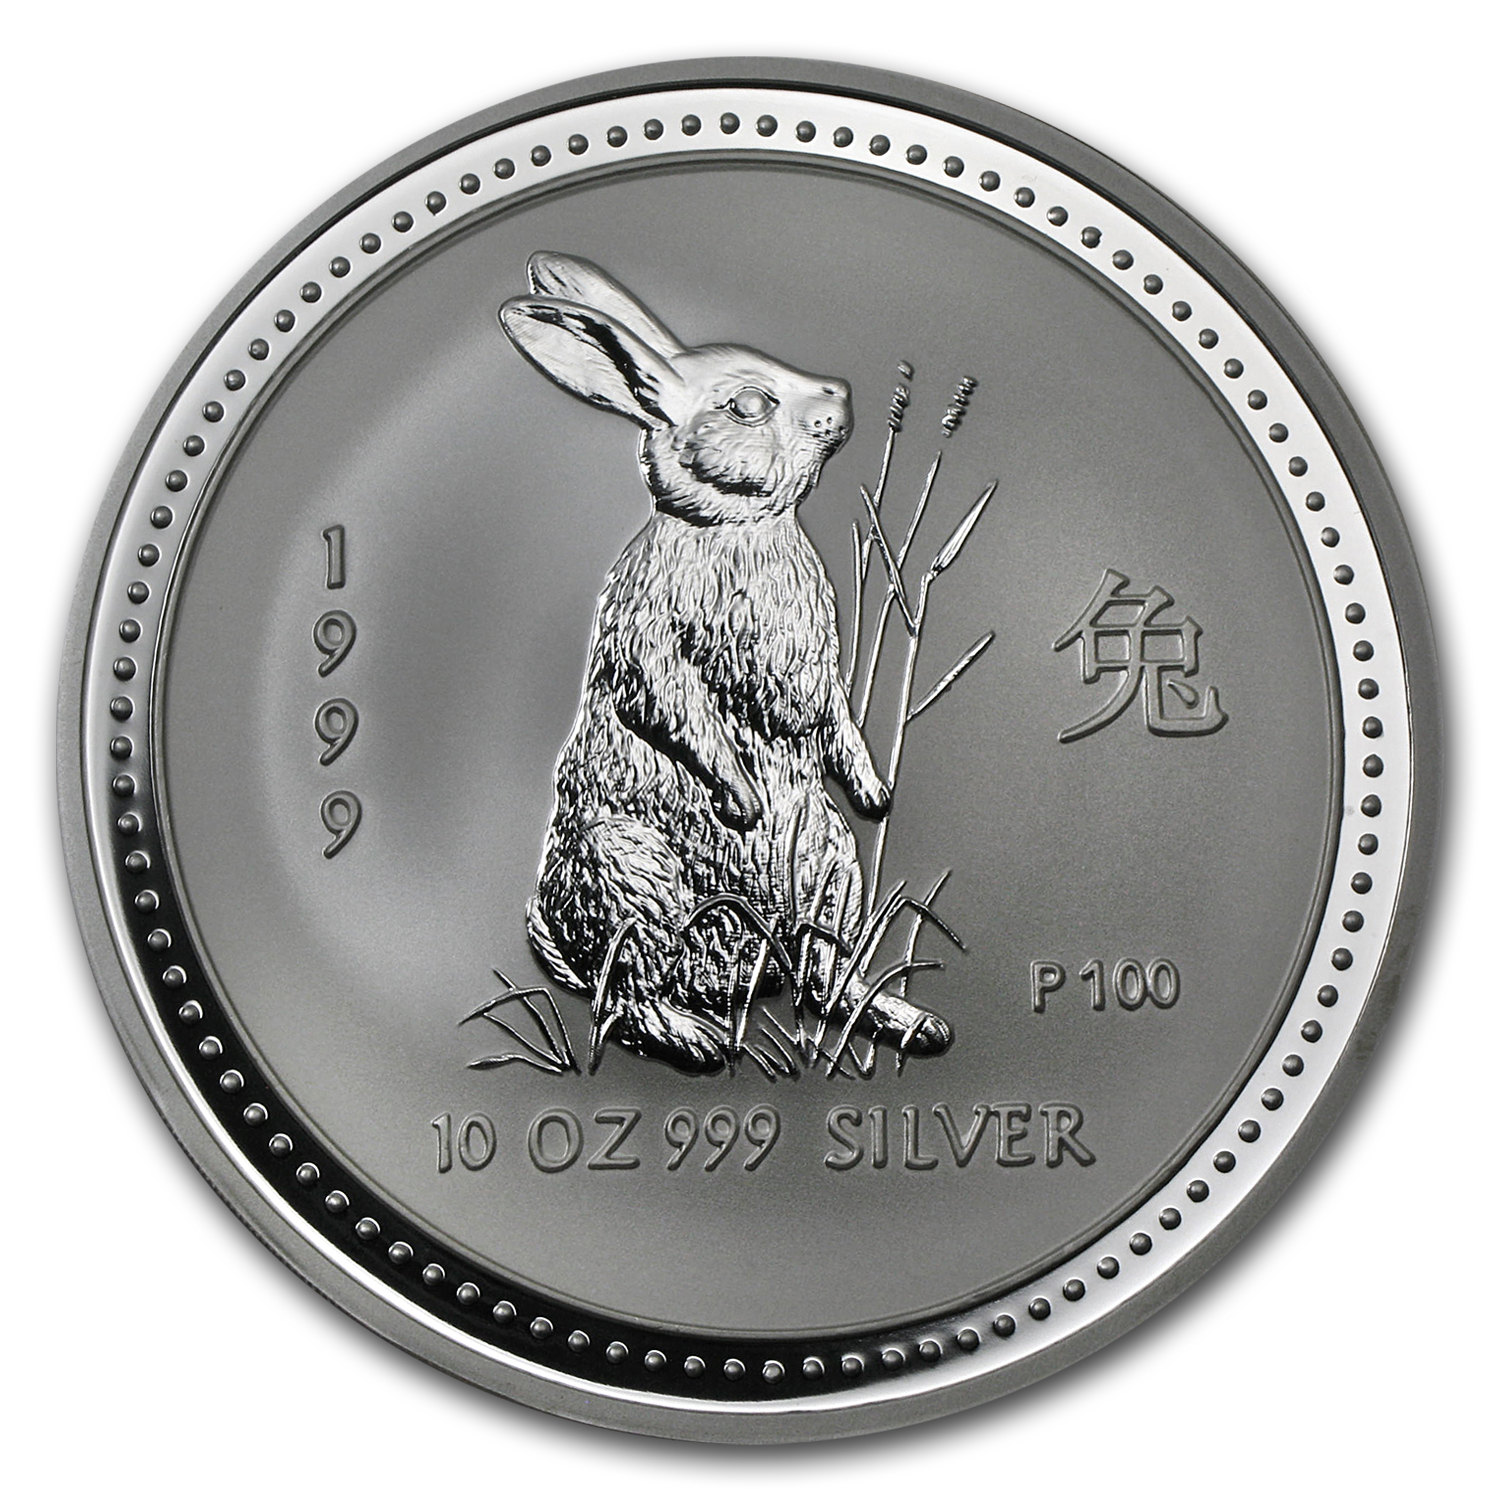 1999 10 oz Silver Lunar Year of the Rabbit (Series I)